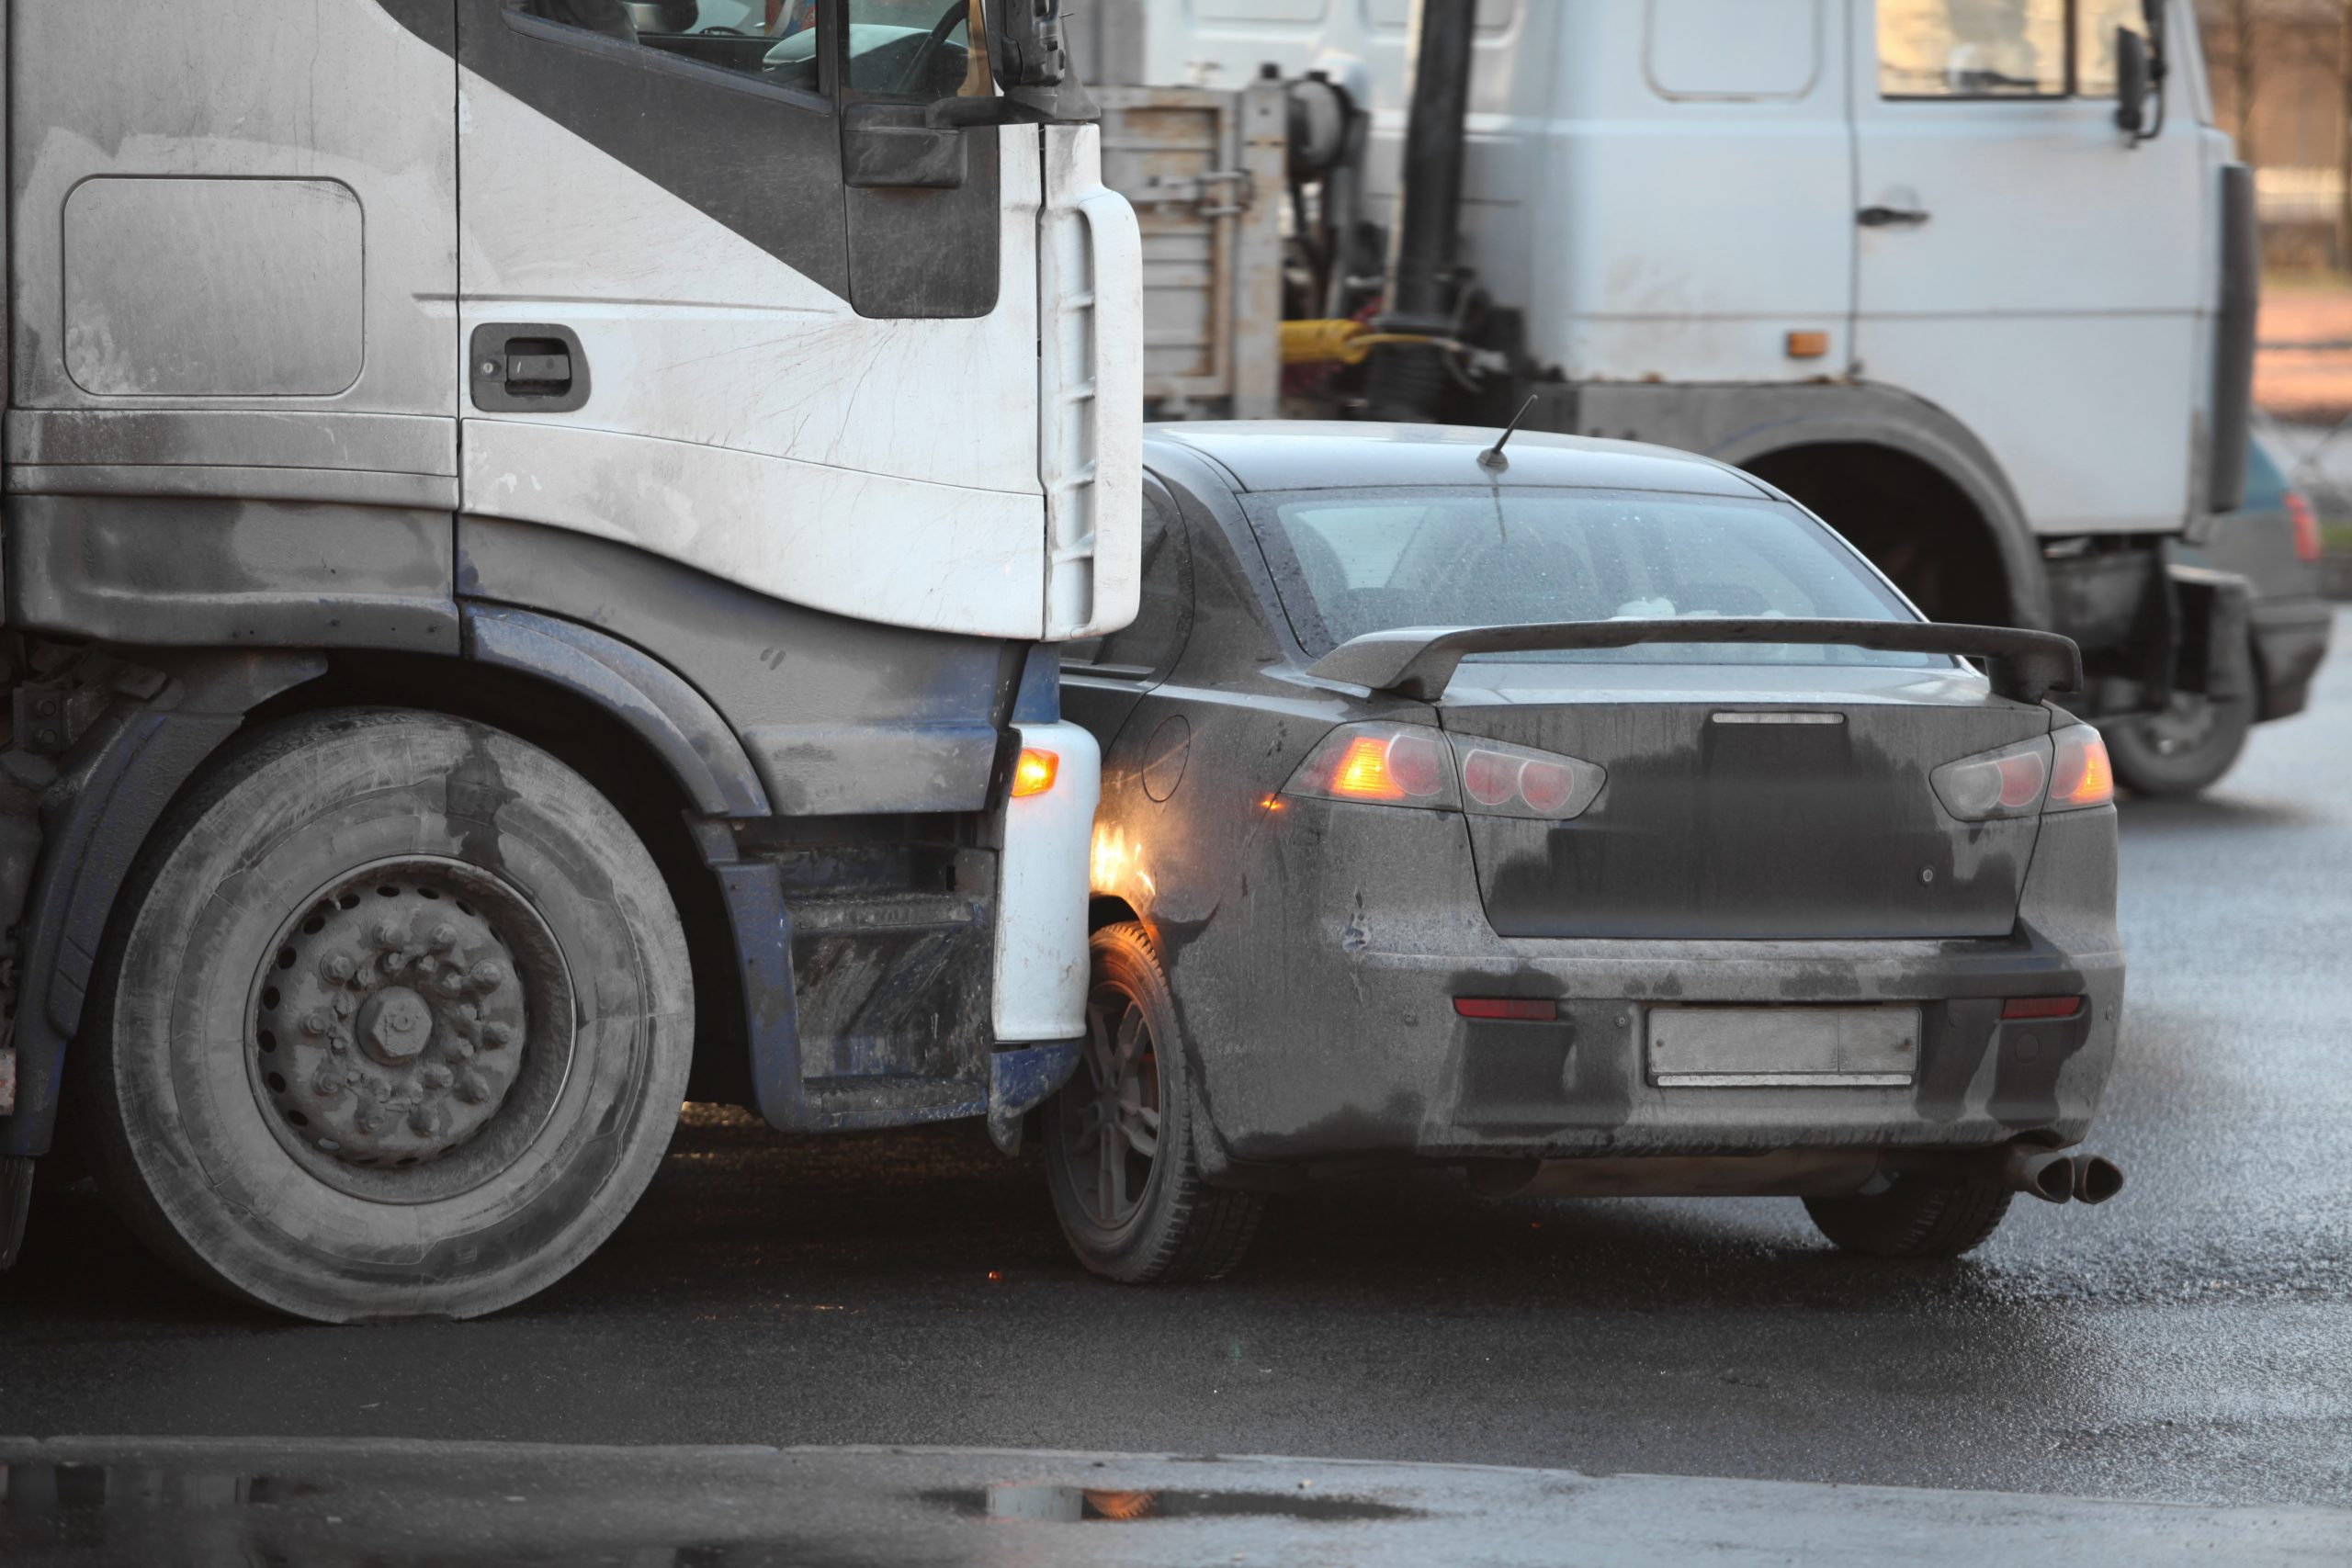 photo a car being hit by a truck in an accident